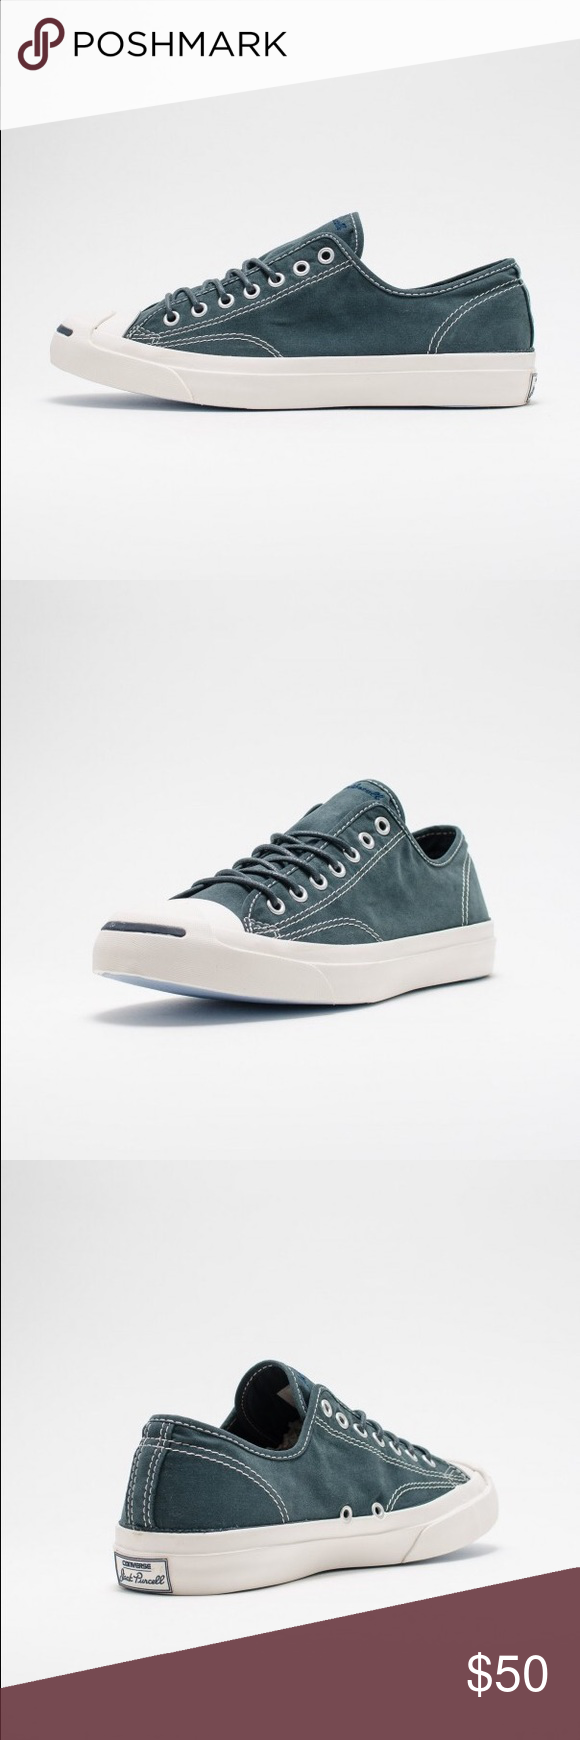 059218ce0c97 1 HOUR SALE! Converse Mens Jack Purcell blue Brand new without box Converse  Shoes Sneakers